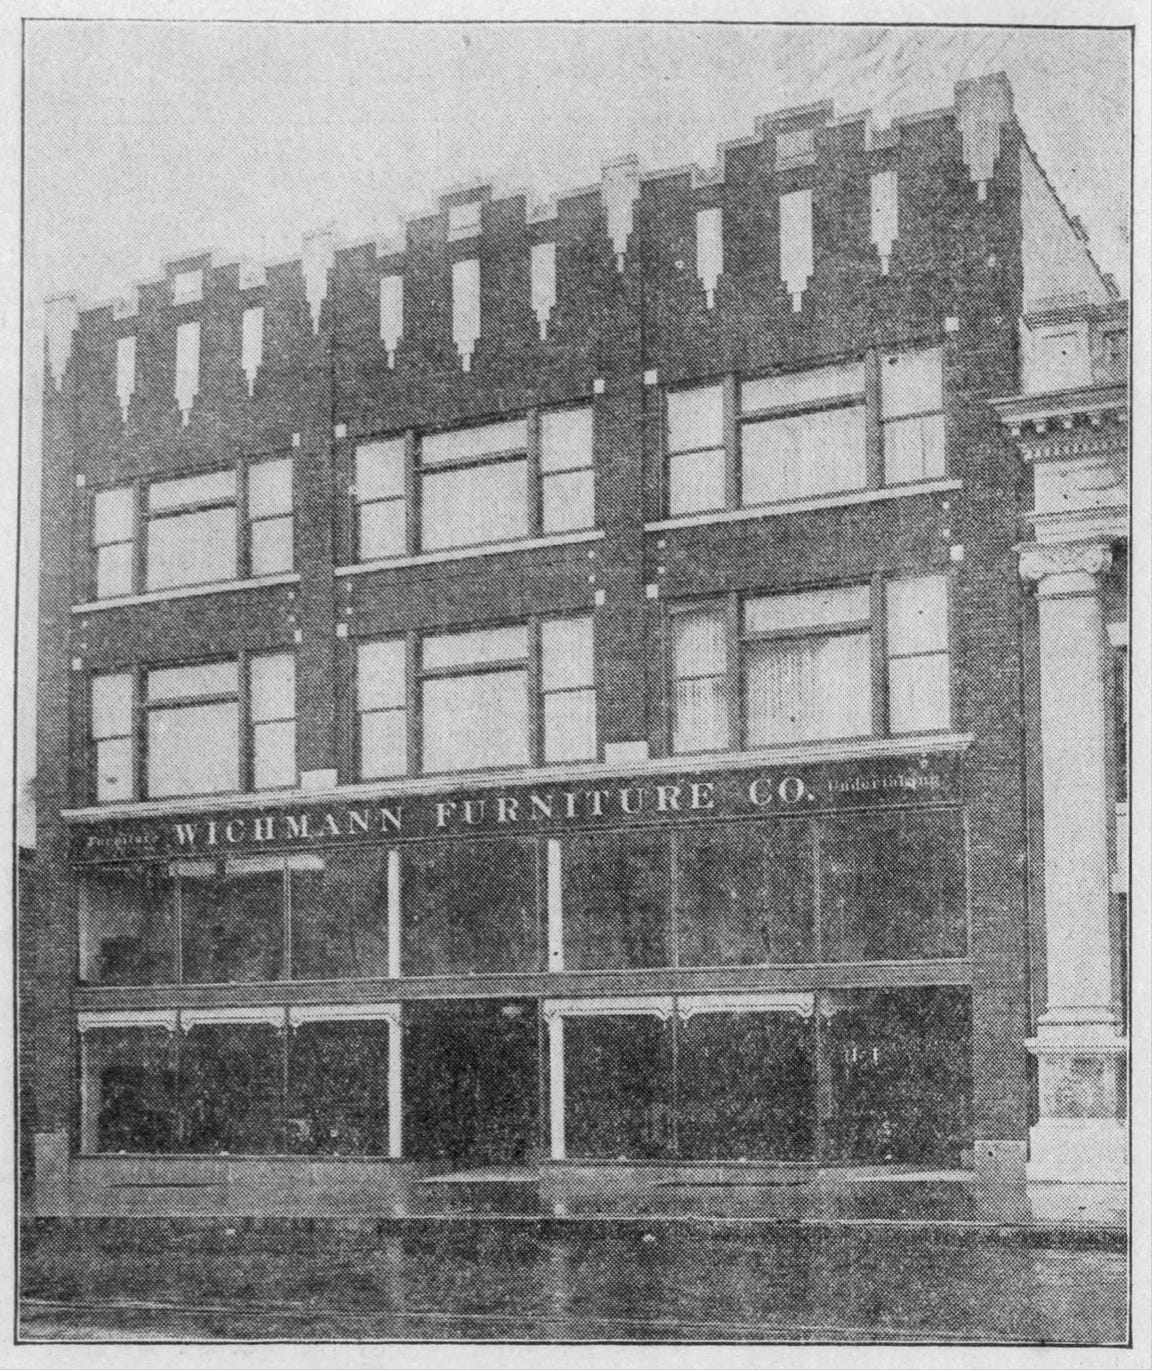 The Wichmann building on College Avenue in the 1920s.